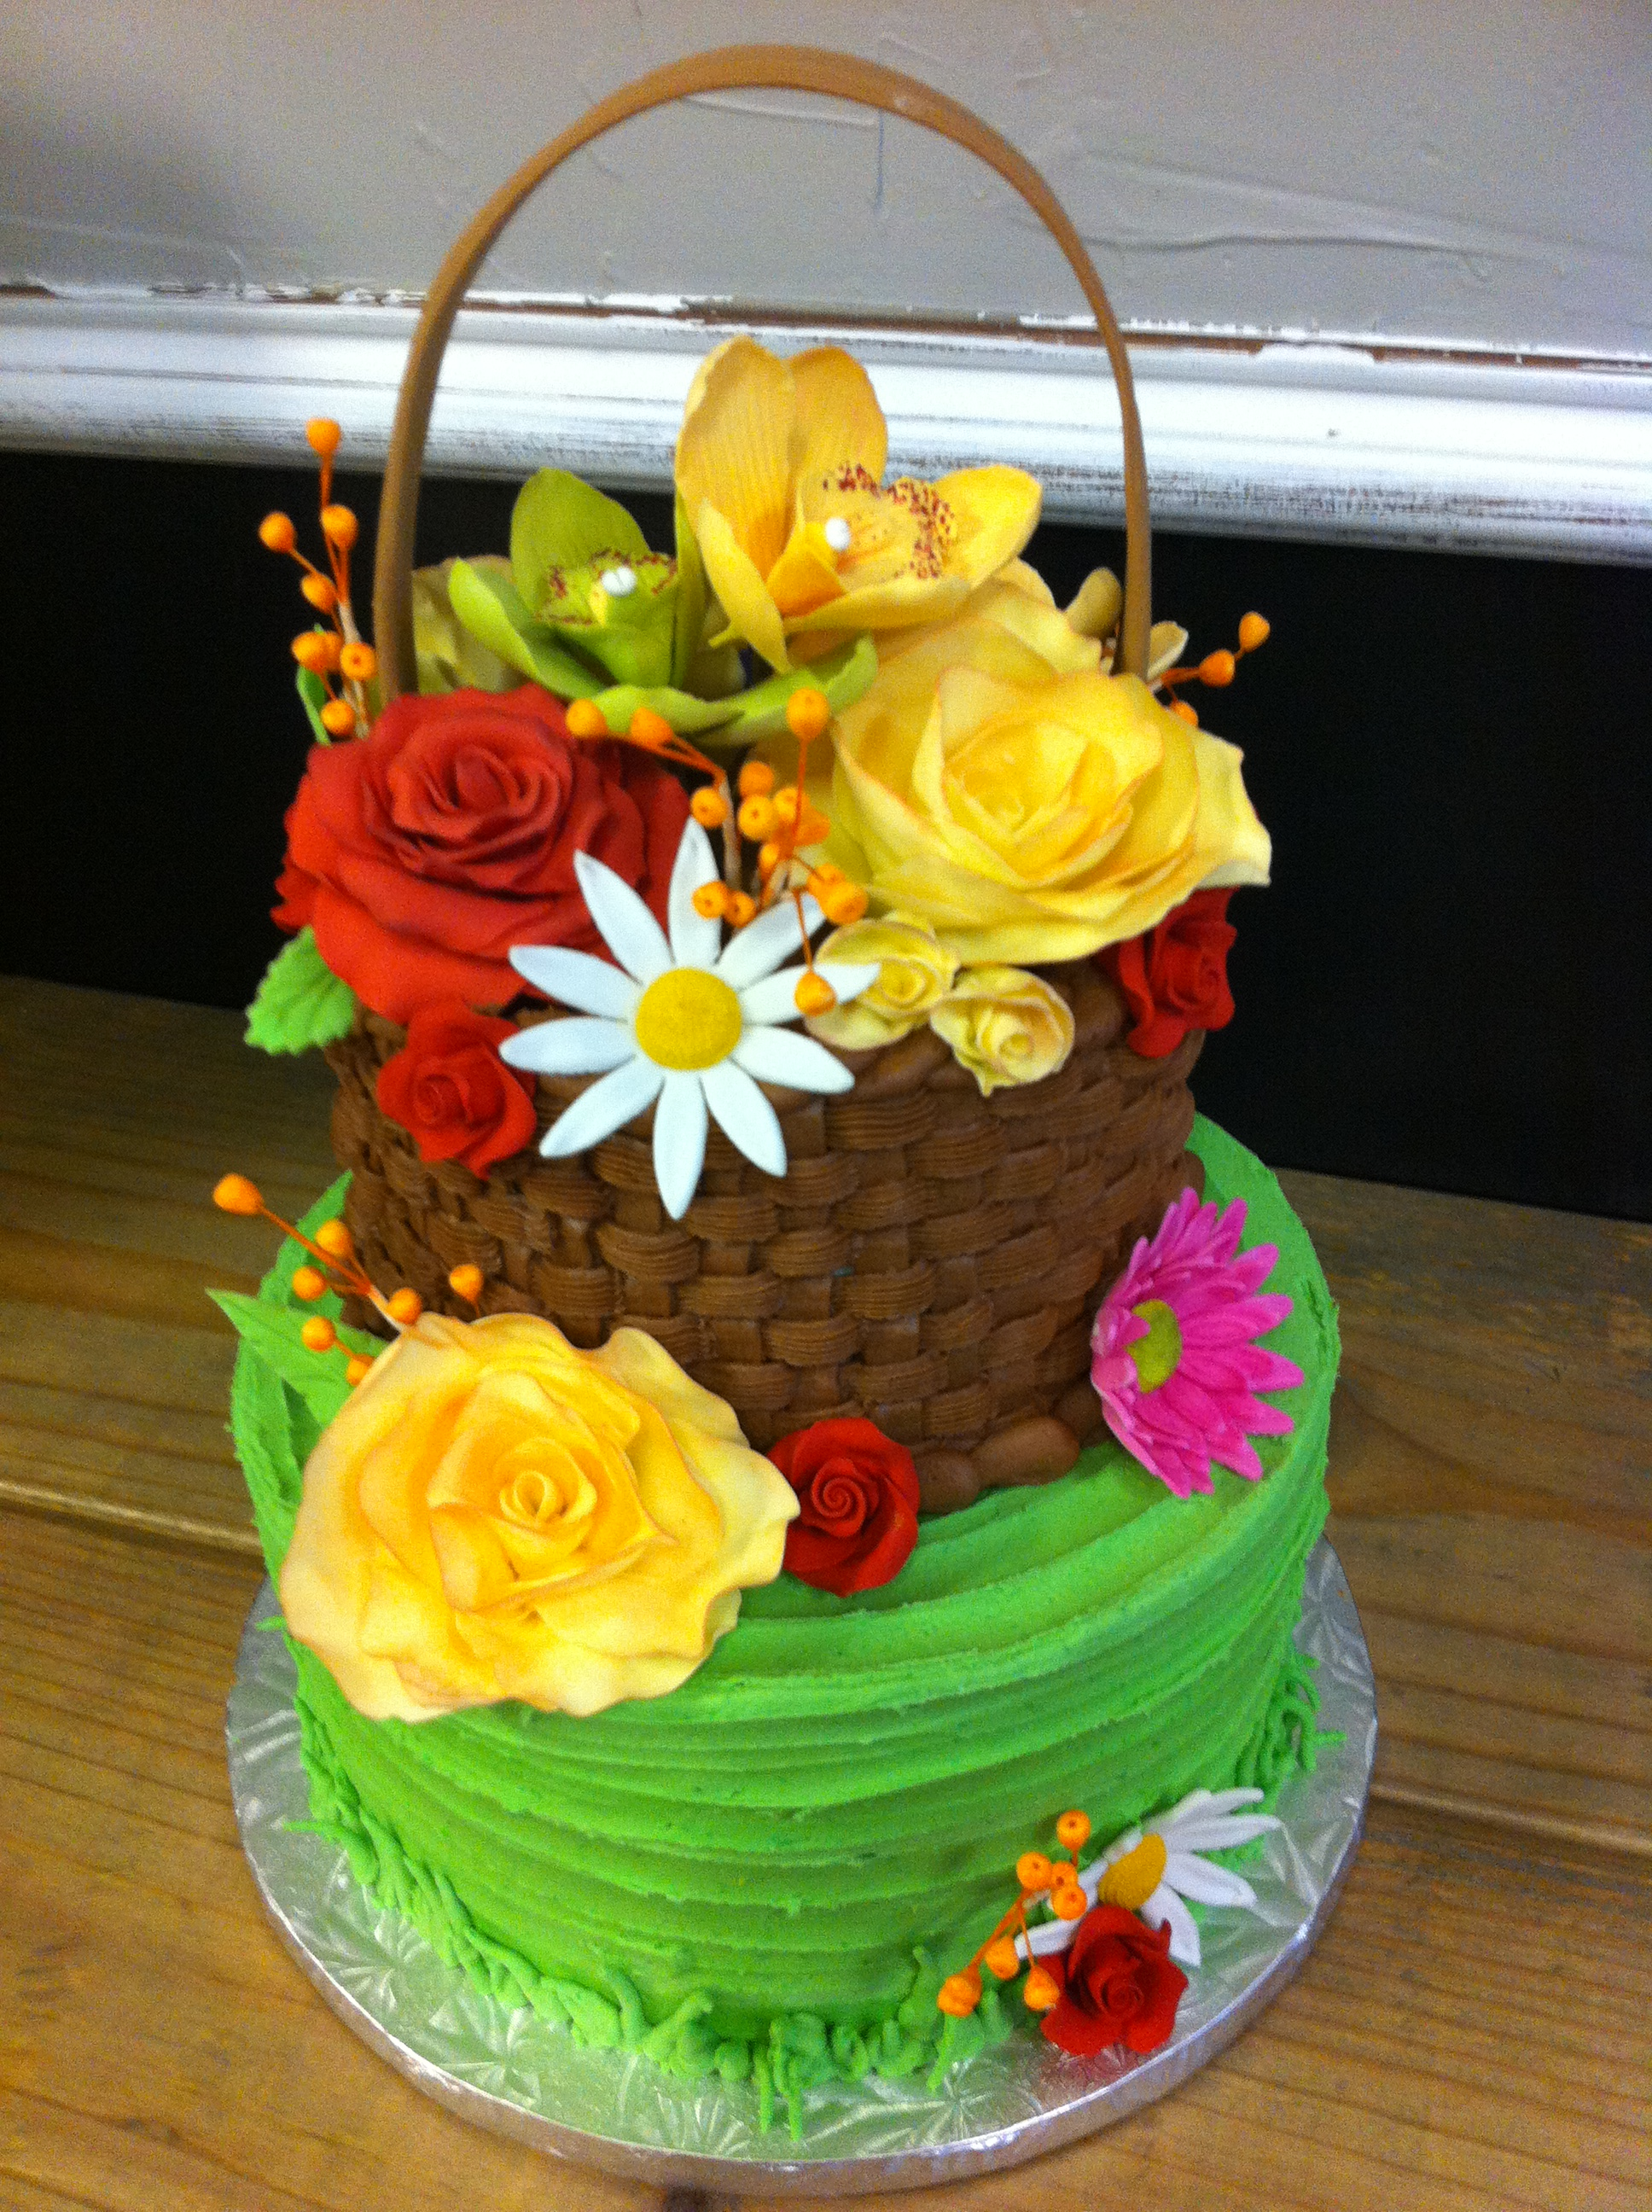 15 Artistic And Legendary Cakes For Any Occasions Page 8 Of 14